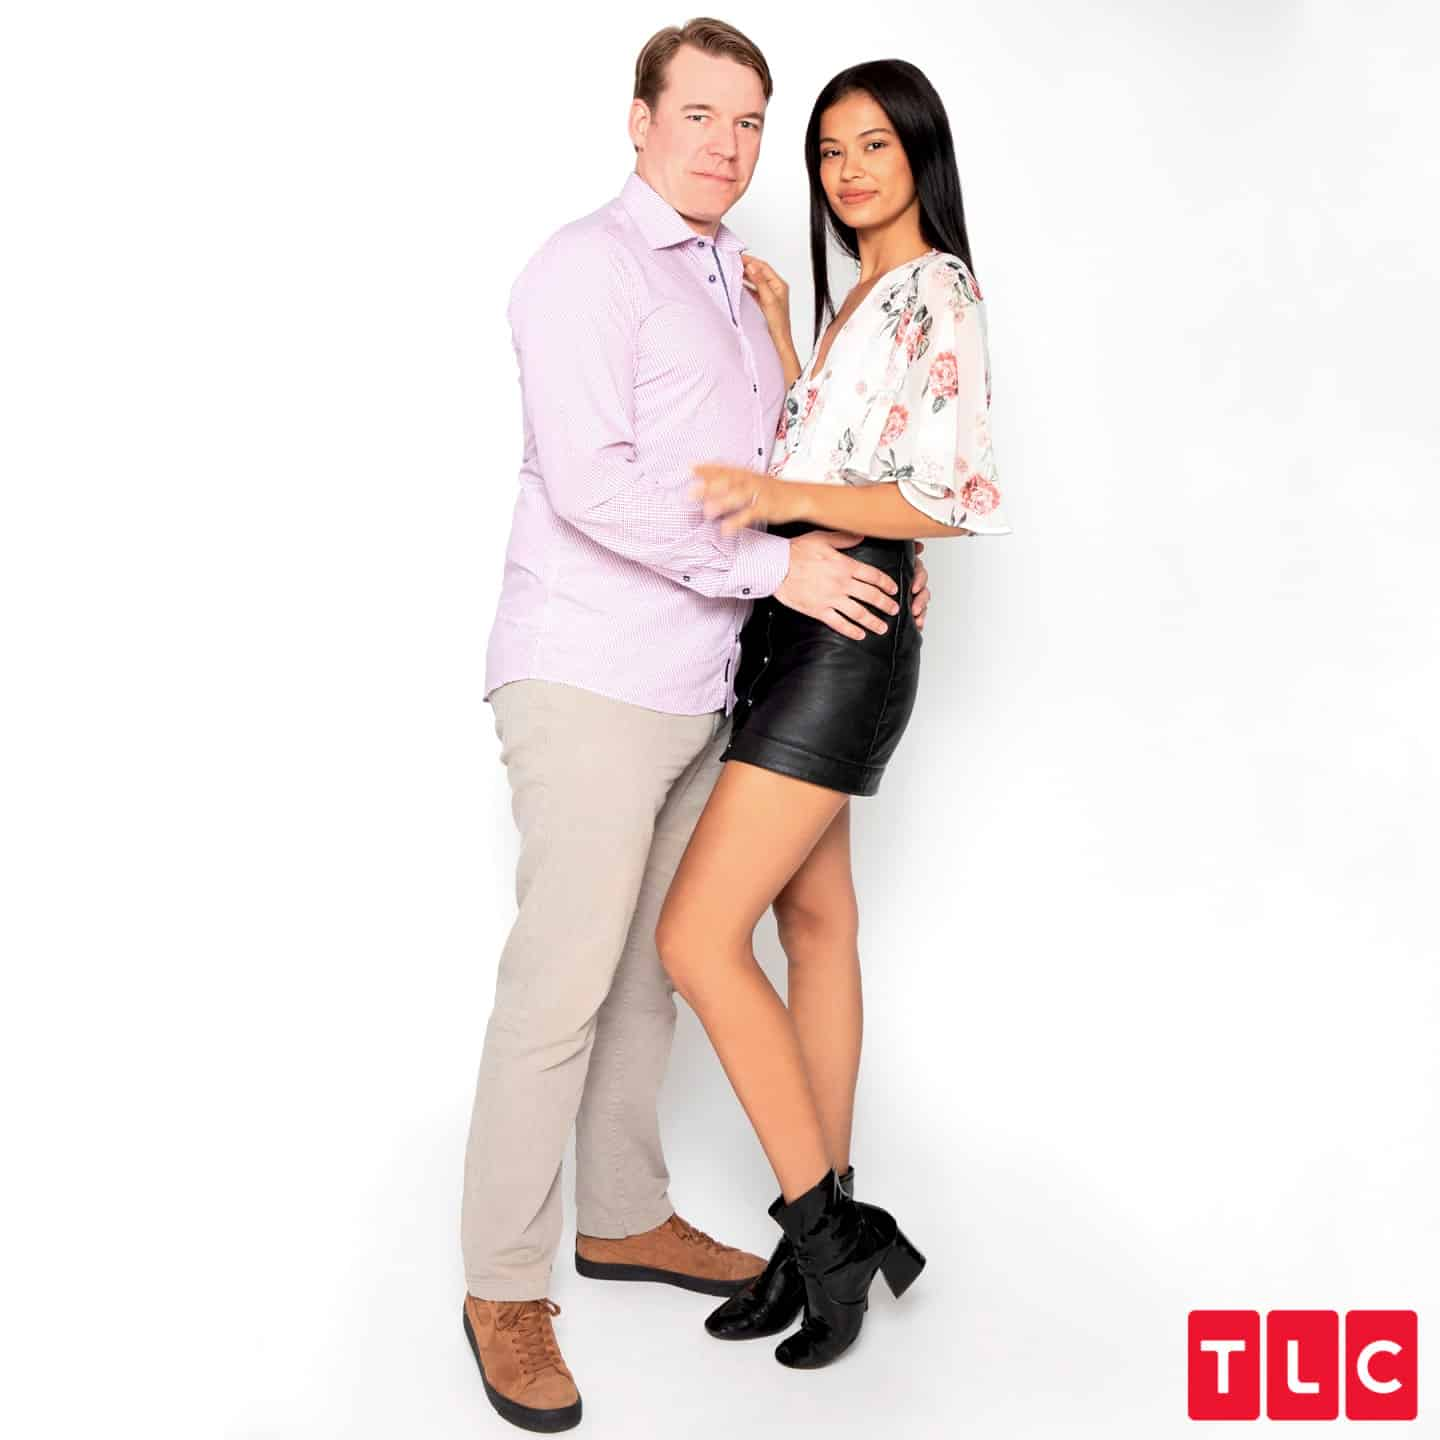 TLC 90 Day Fiance Season 7 Cast Michael and Juliana